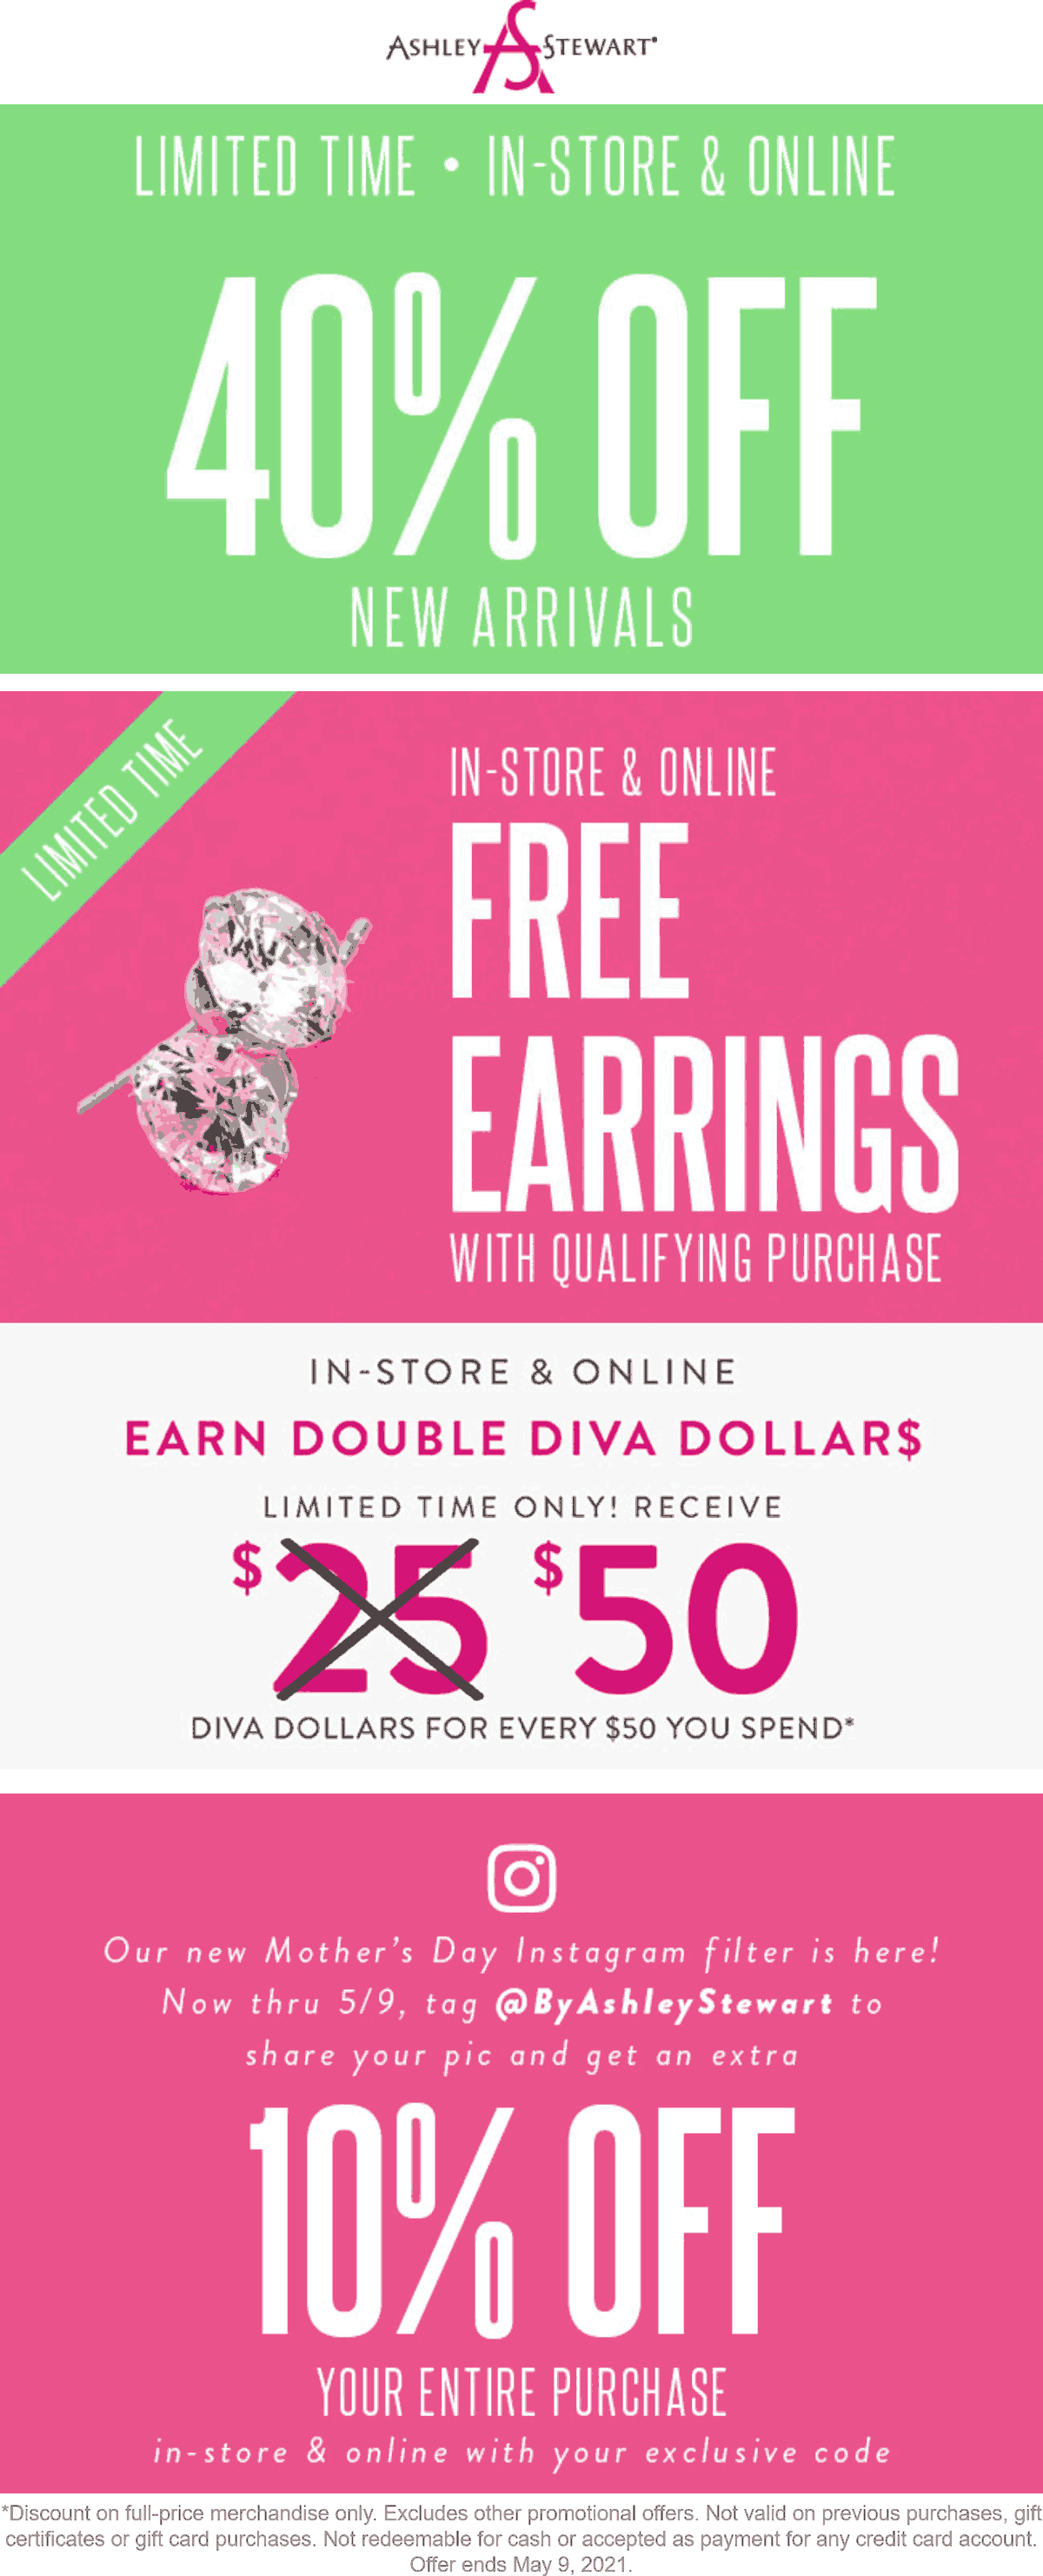 Ashley Stewart stores Coupon  40% off new arrivals + free earrings today at Ashley Stewart #ashleystewart